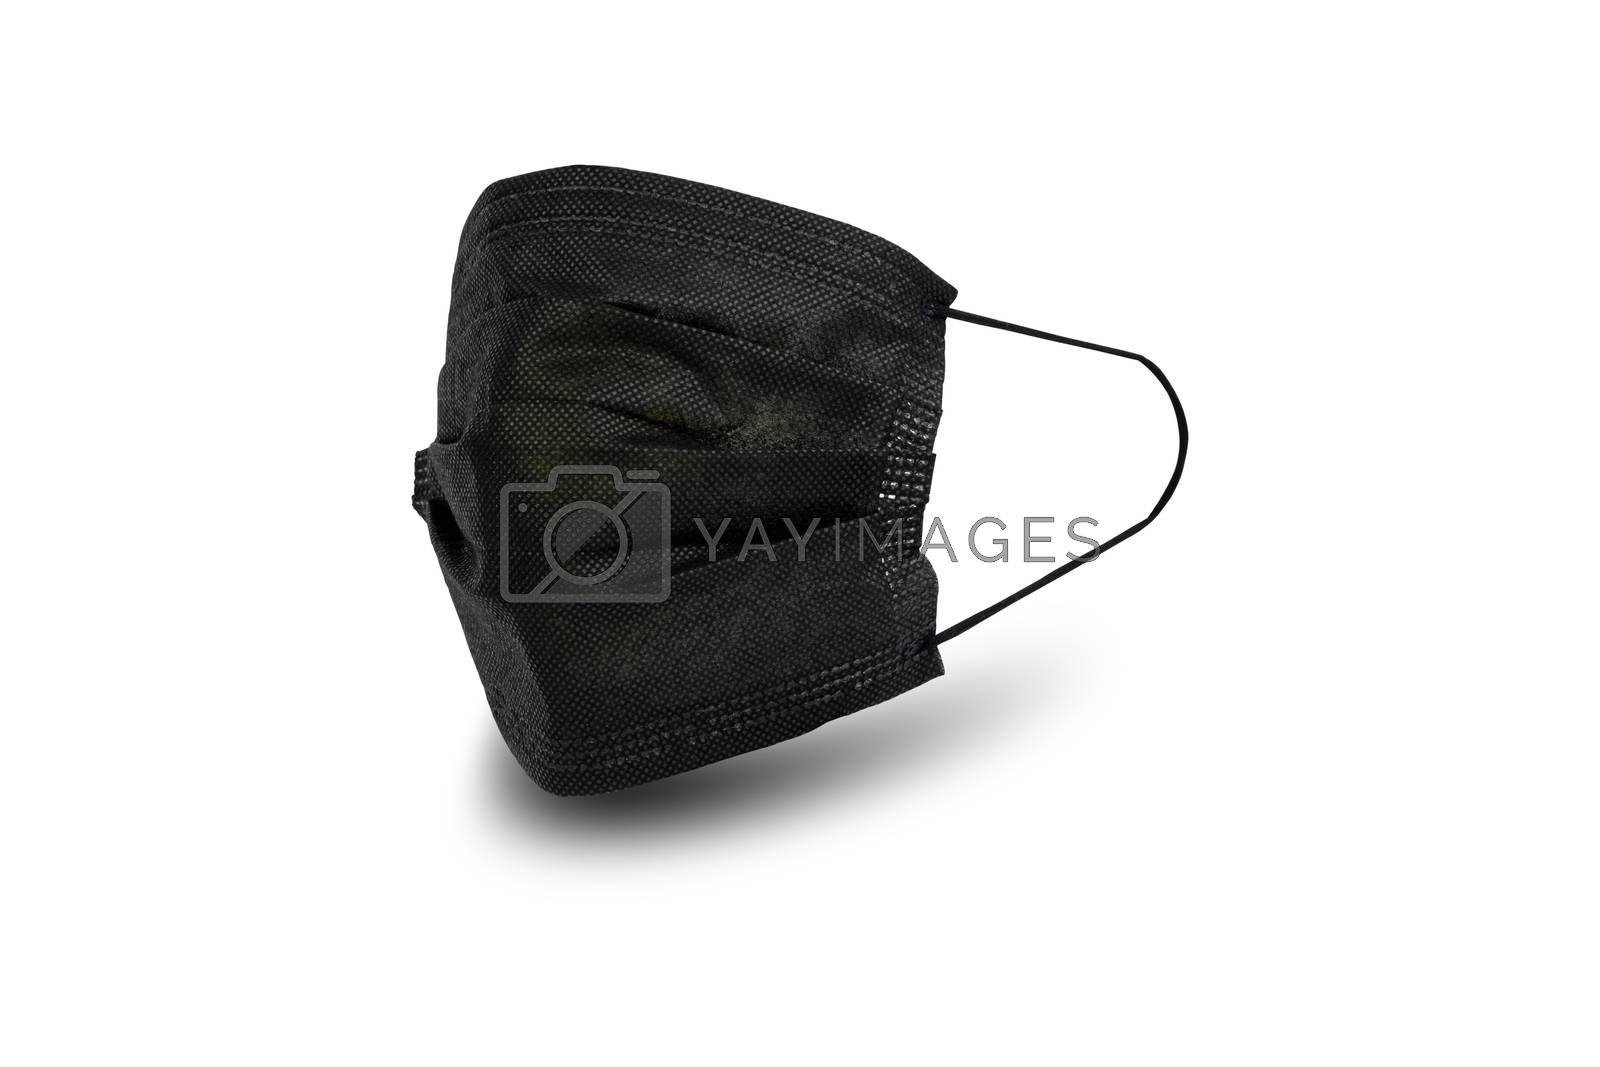 Black sanitary napkin mask for preventing spreading and respiratory infections isolated on white background, Social distancing and stop Coronavirus Covid-19 concept.